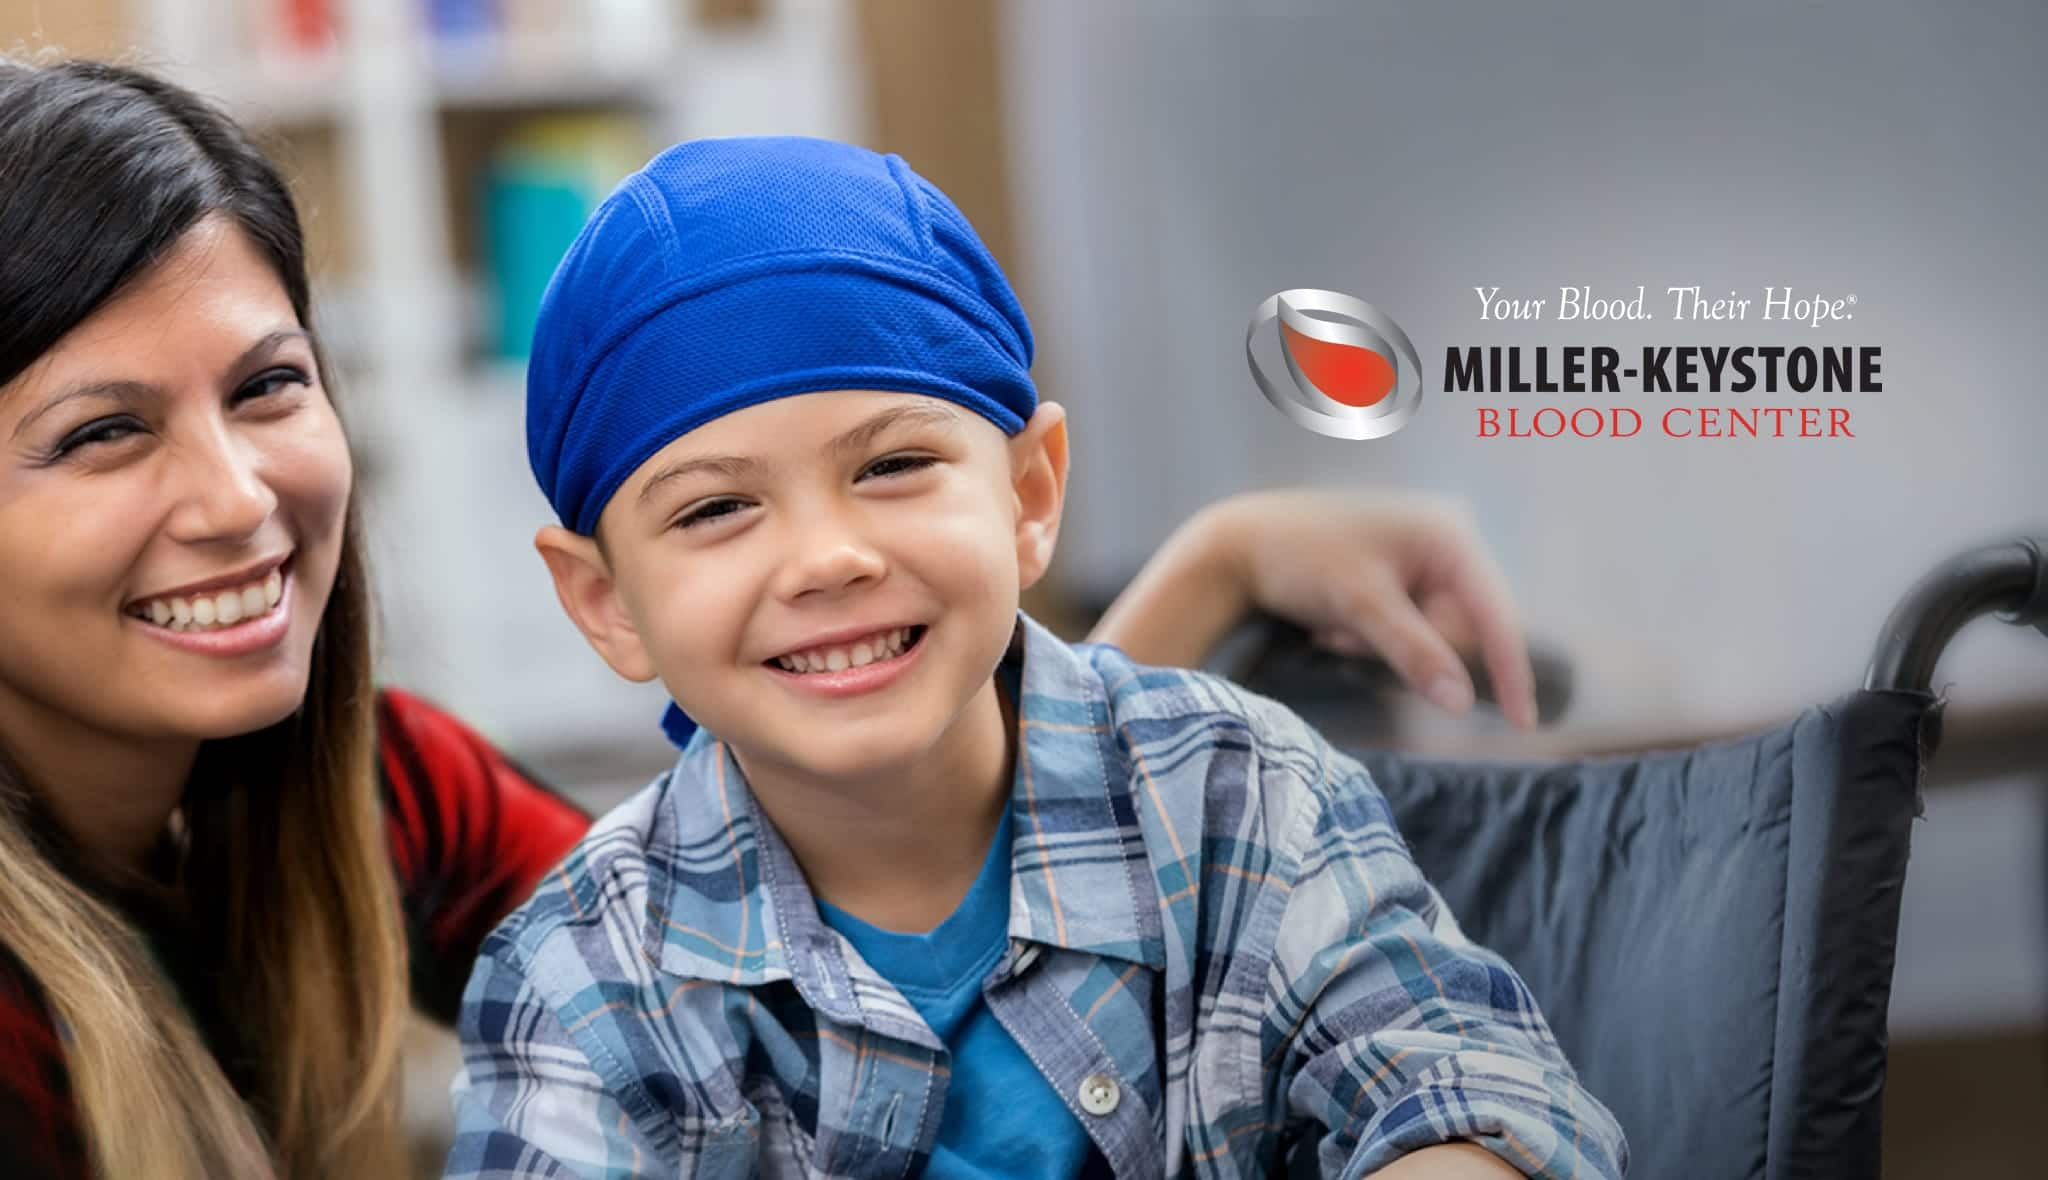 Miller-Keystone Blood Center Website